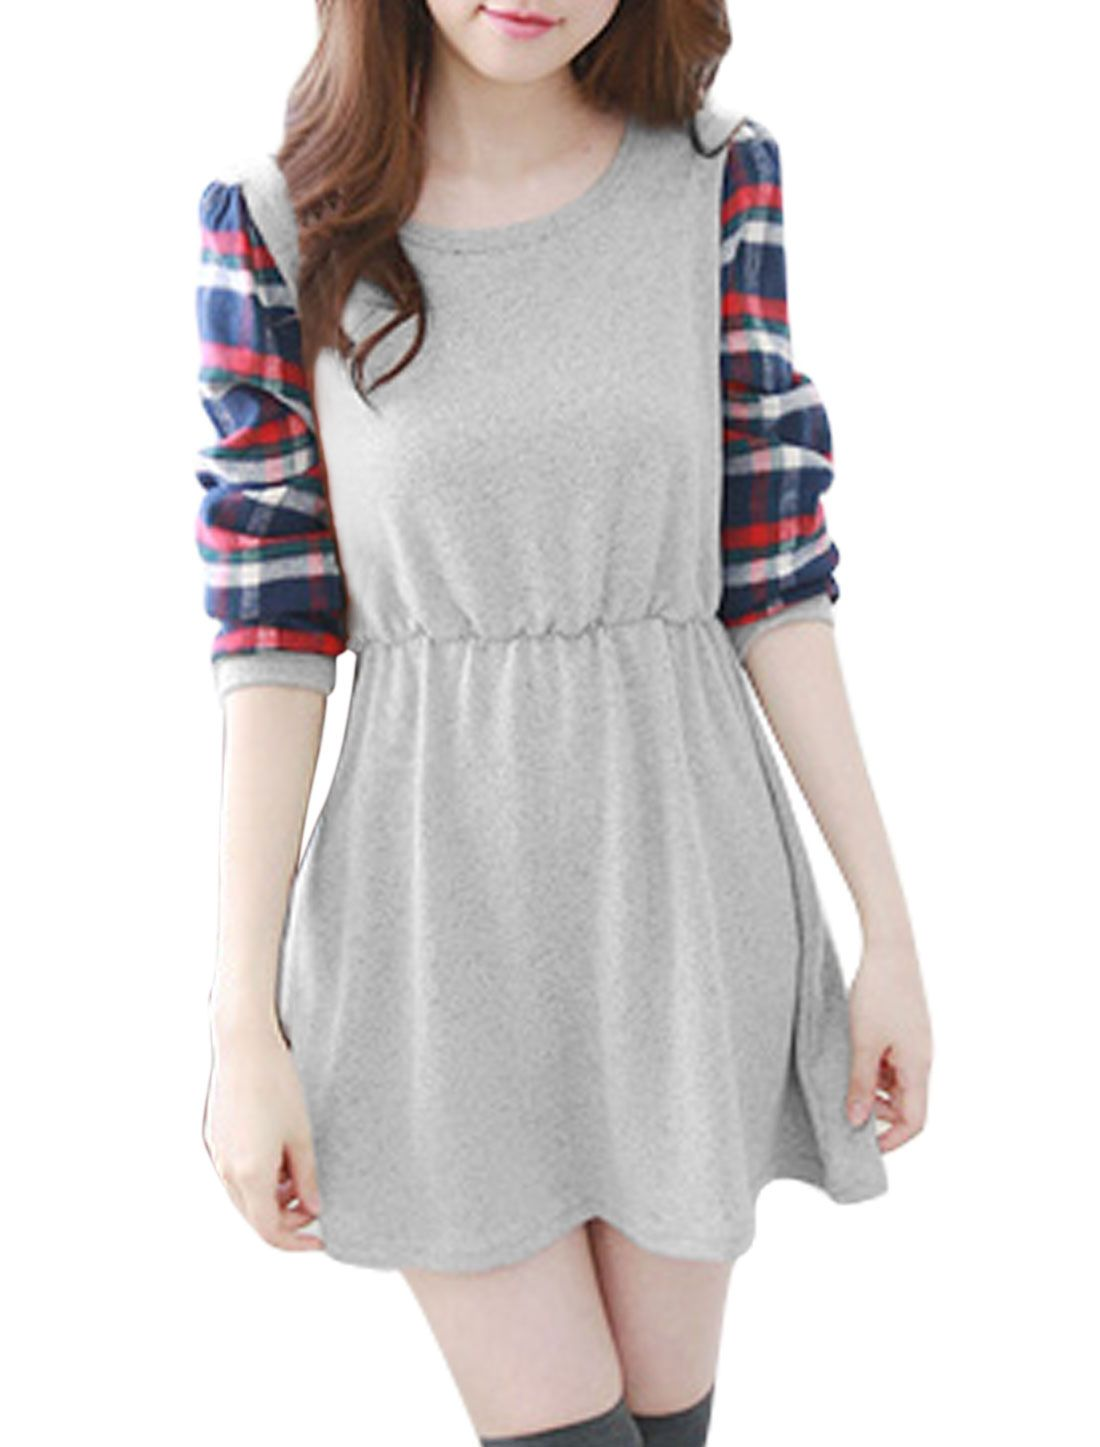 Allegra K Women's Round Neck Long Sleeves Unlined Pullover Skater Dress Gray (Size S / 4)